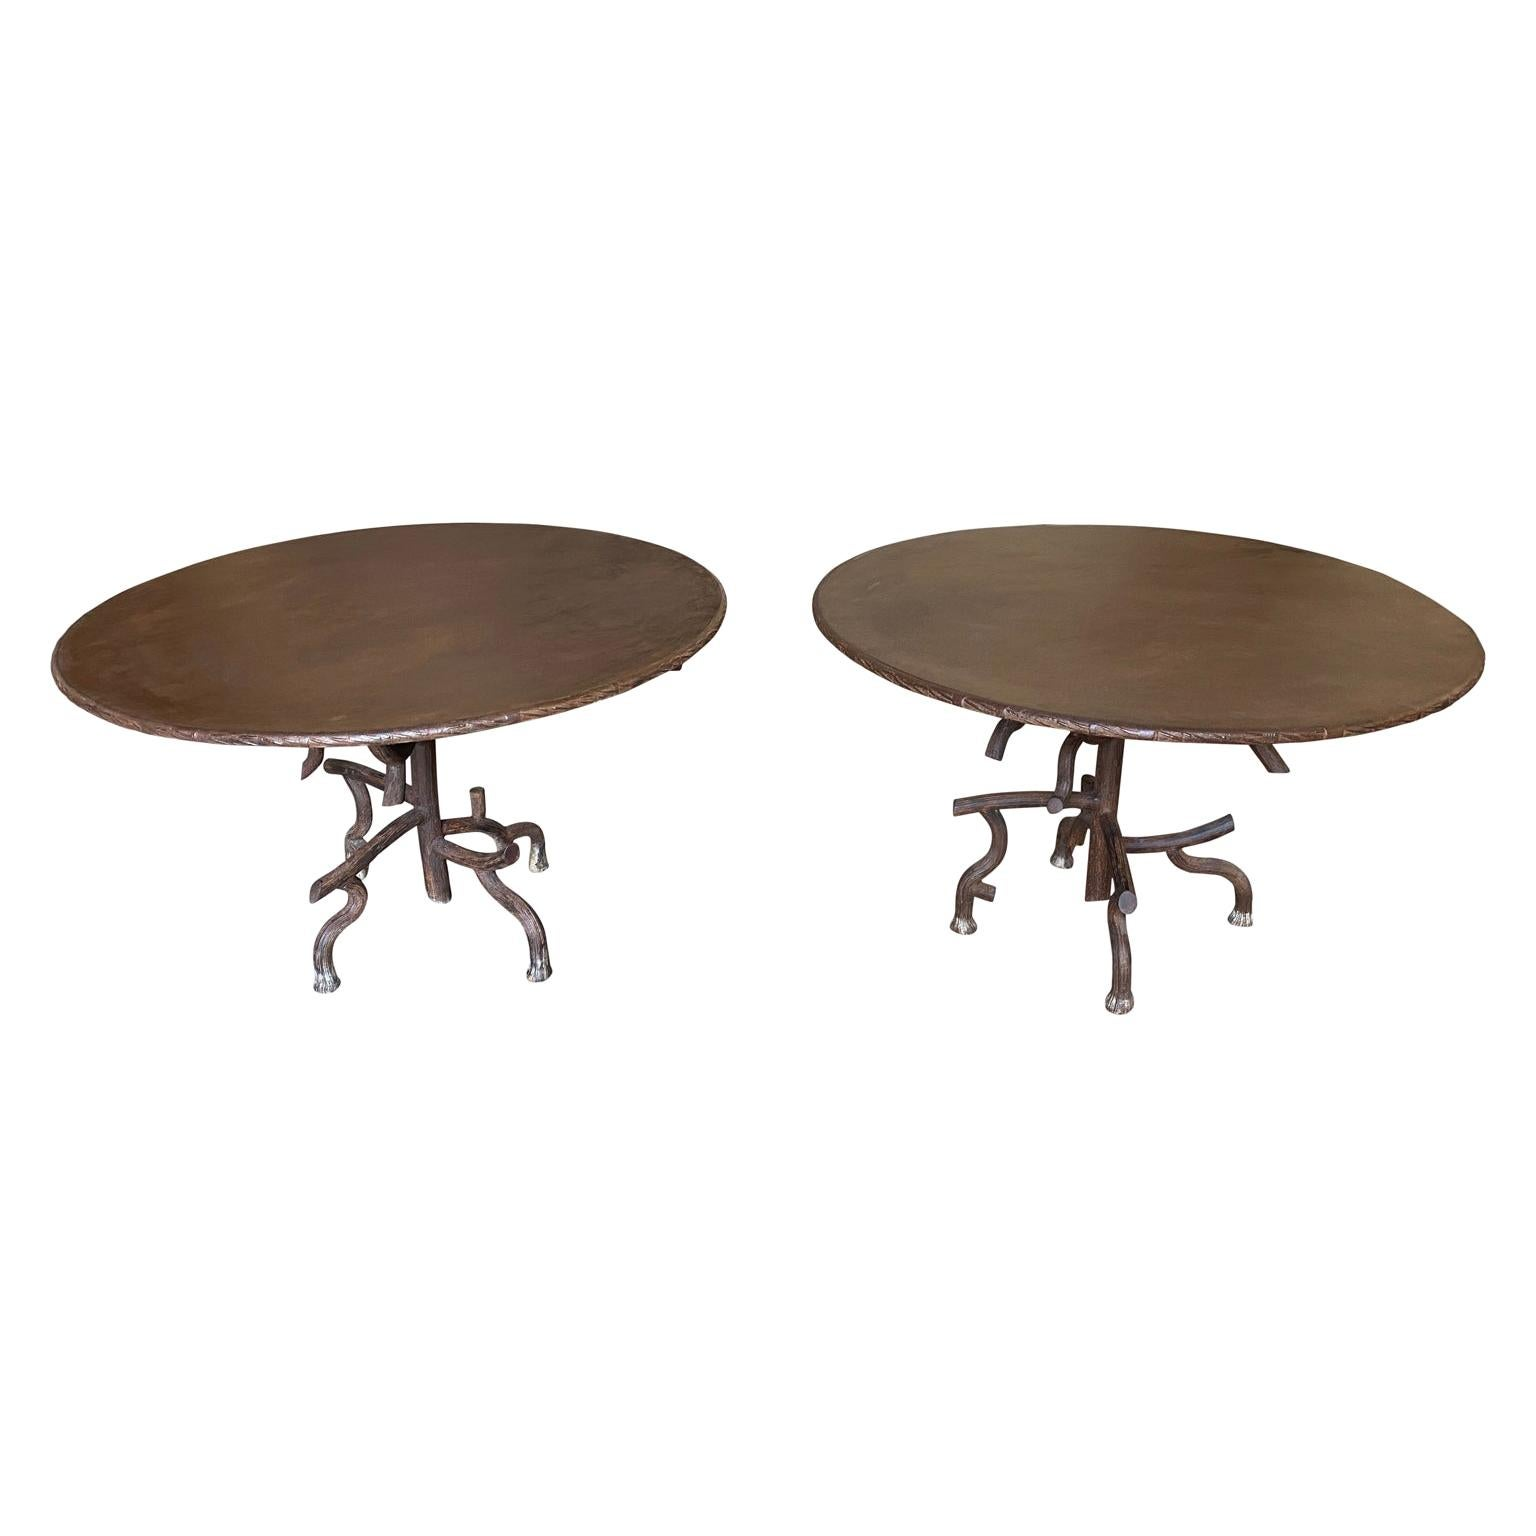 Pair of French Iron Faux Bois Garden Dining Tables